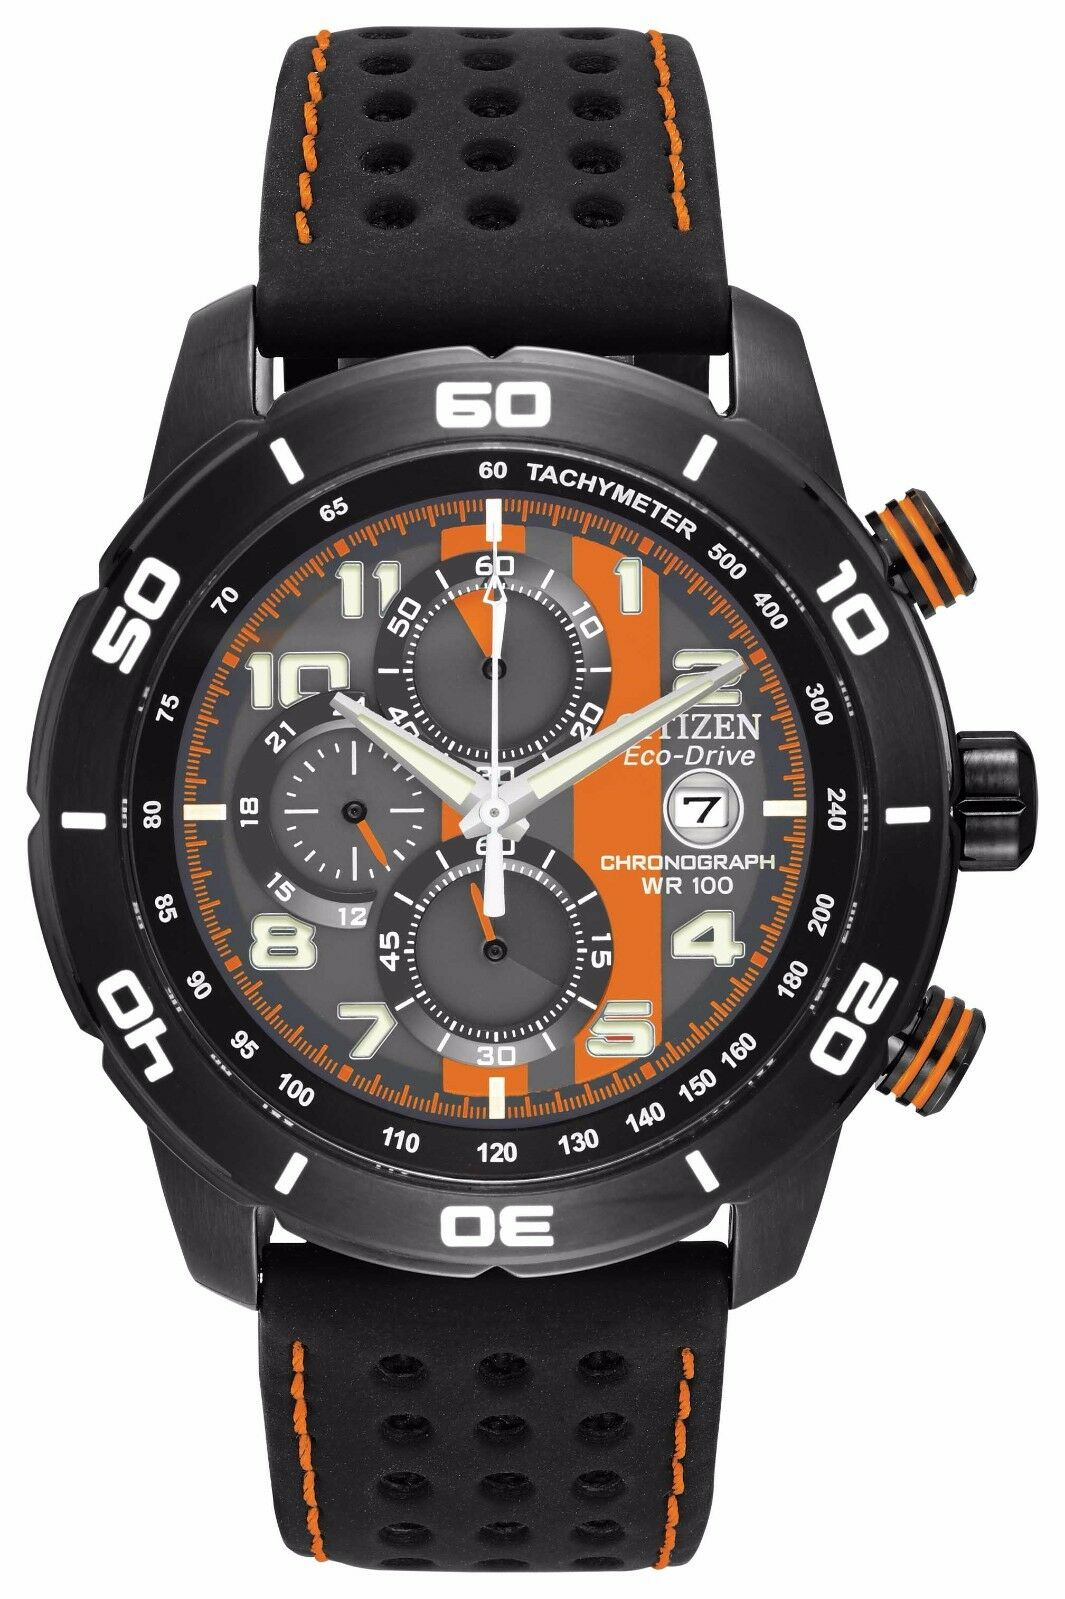 $149.99 - Citizen Eco-Drive Men's CA0467-11H Chronograph Black and Orange Dial Sport Watch